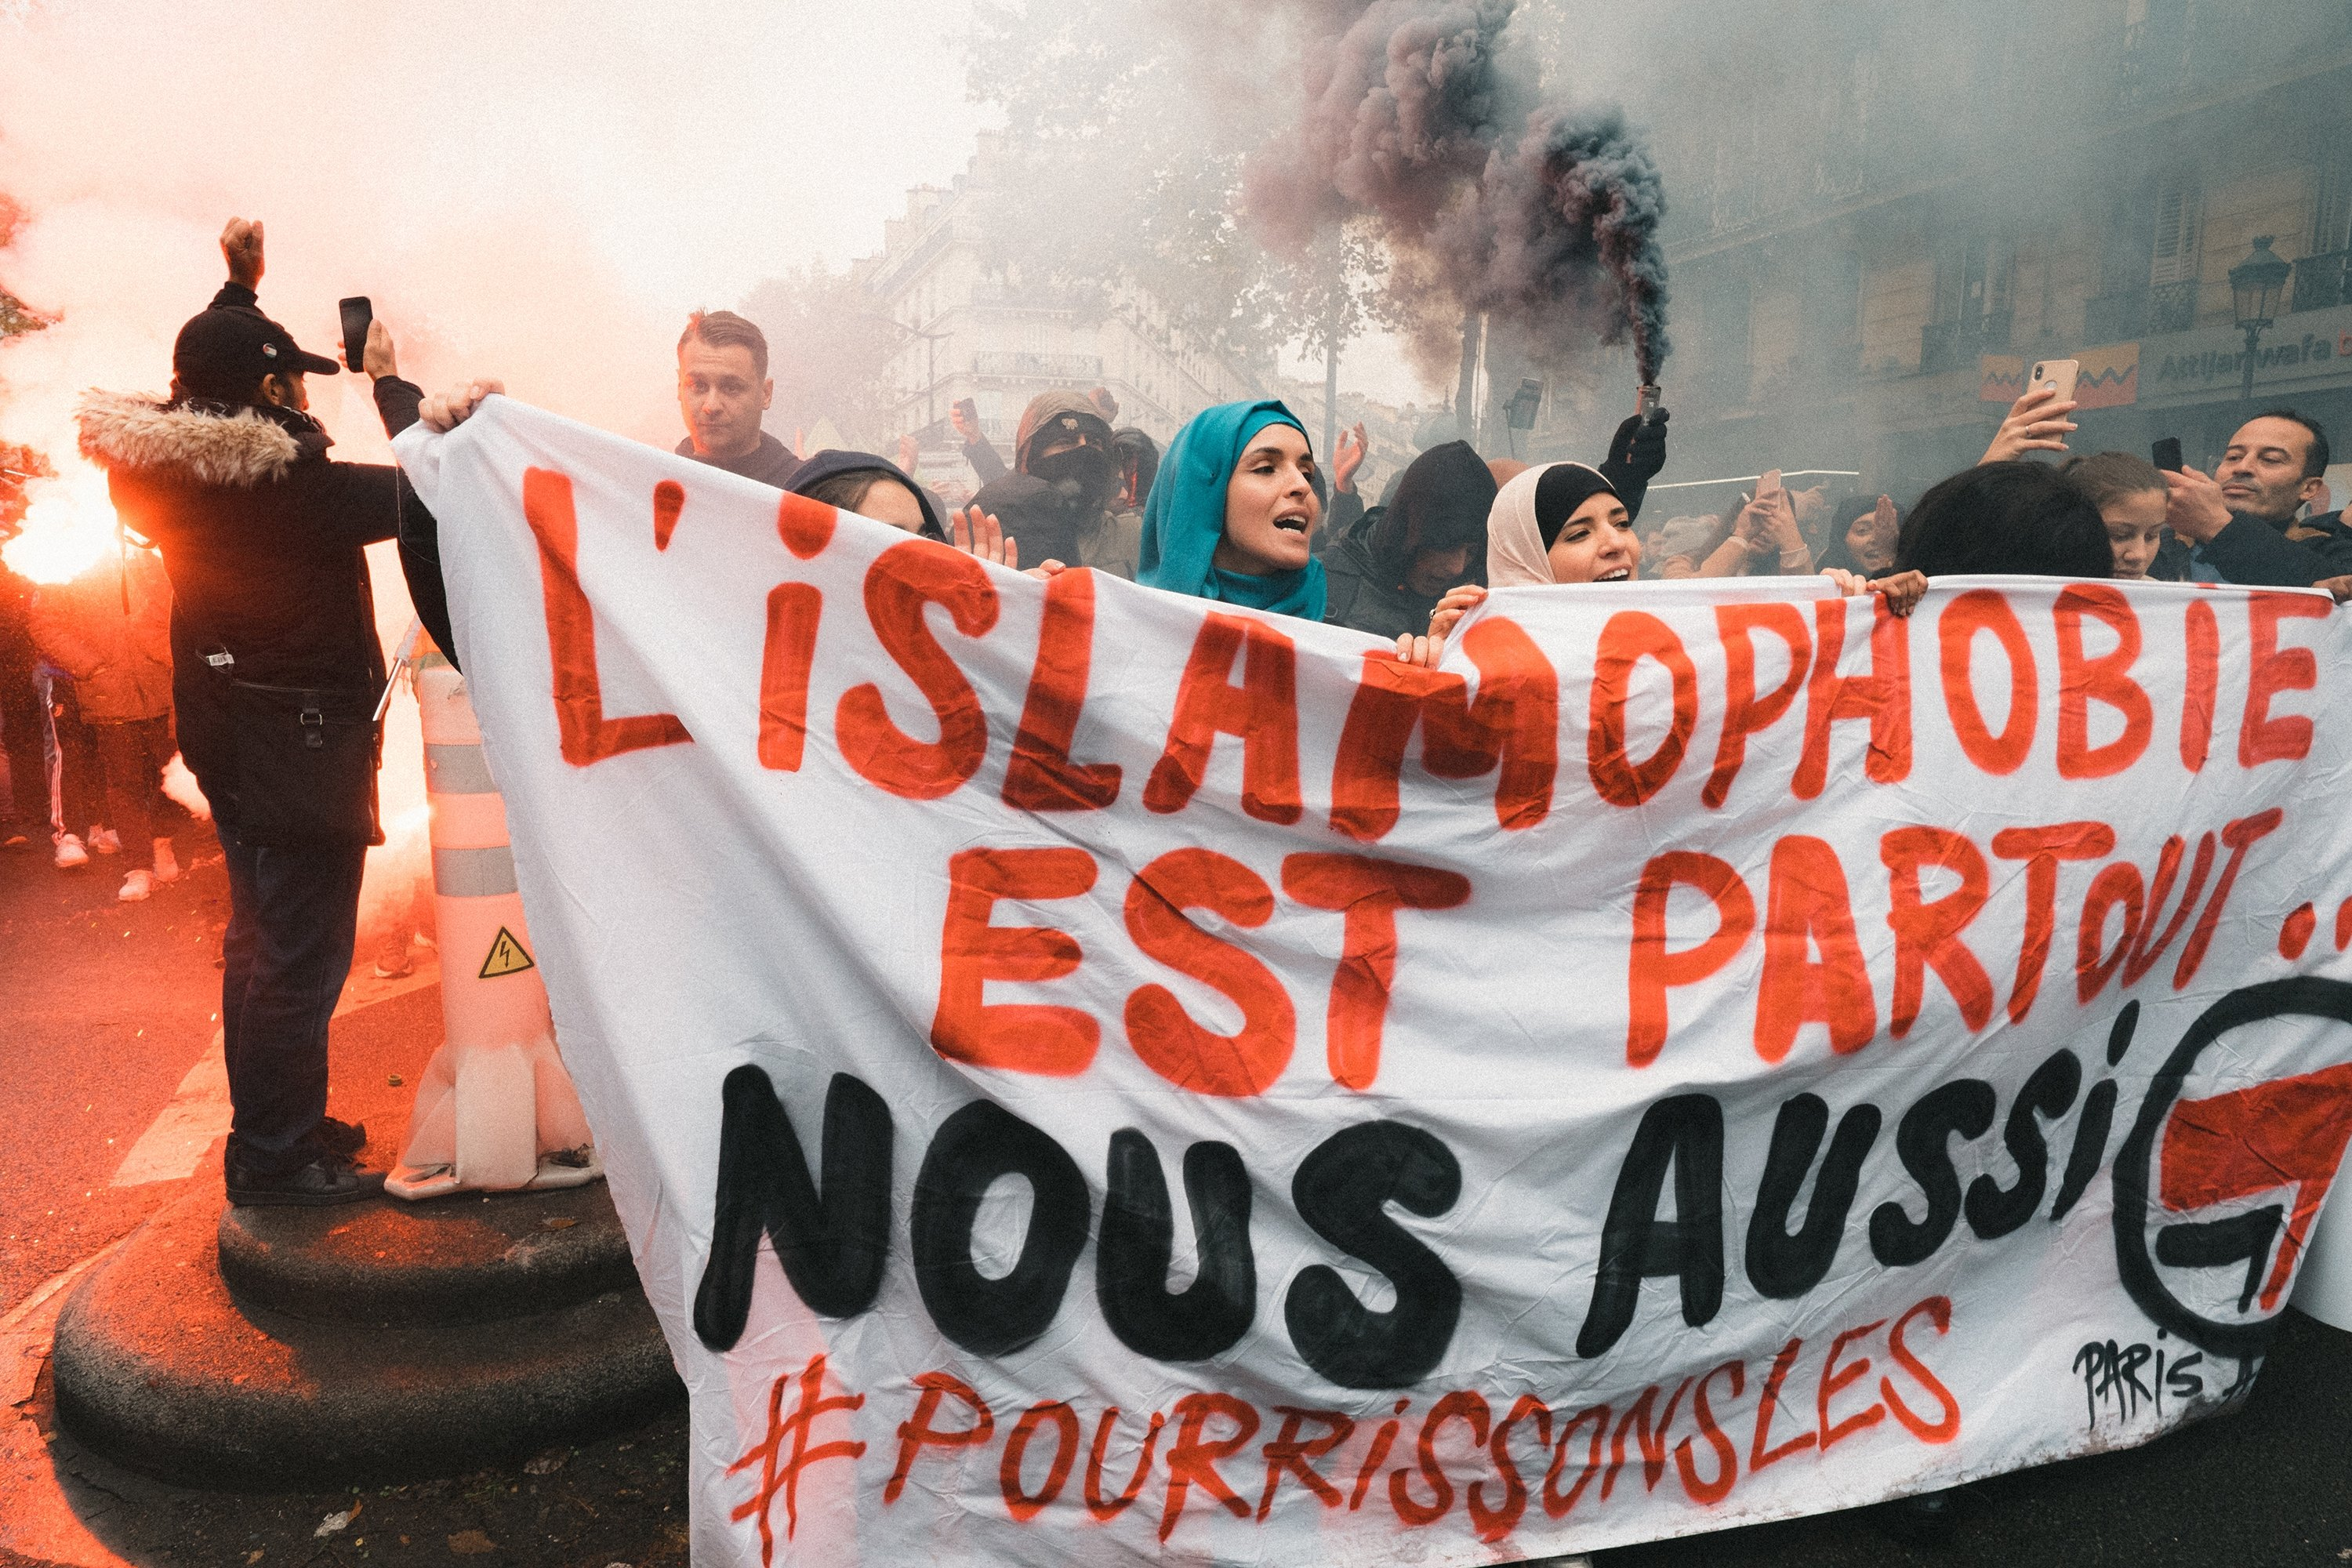 People chant slogans and hold placards as they take part in a demonstration march in front of the Gare du Nord, in Paris, France, Nov. 10, 2019, to protest against Islamophobia, at the call of several anti-racist activists and collectives. (Getty Images Photo)